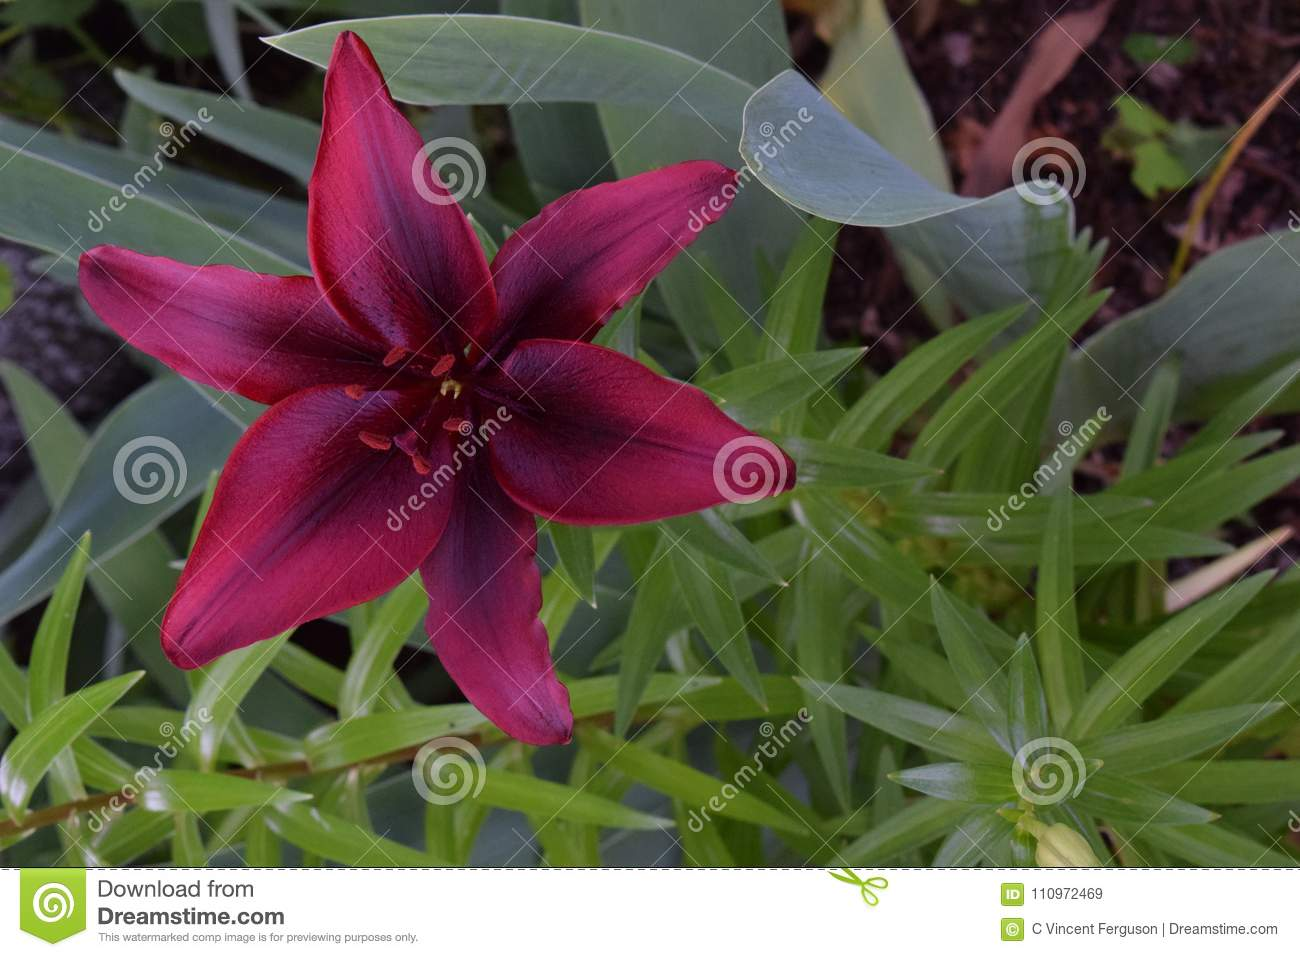 Lily maroon flower on green stock image image of lily nature download lily maroon flower on green stock image image of lily nature 110972469 izmirmasajfo